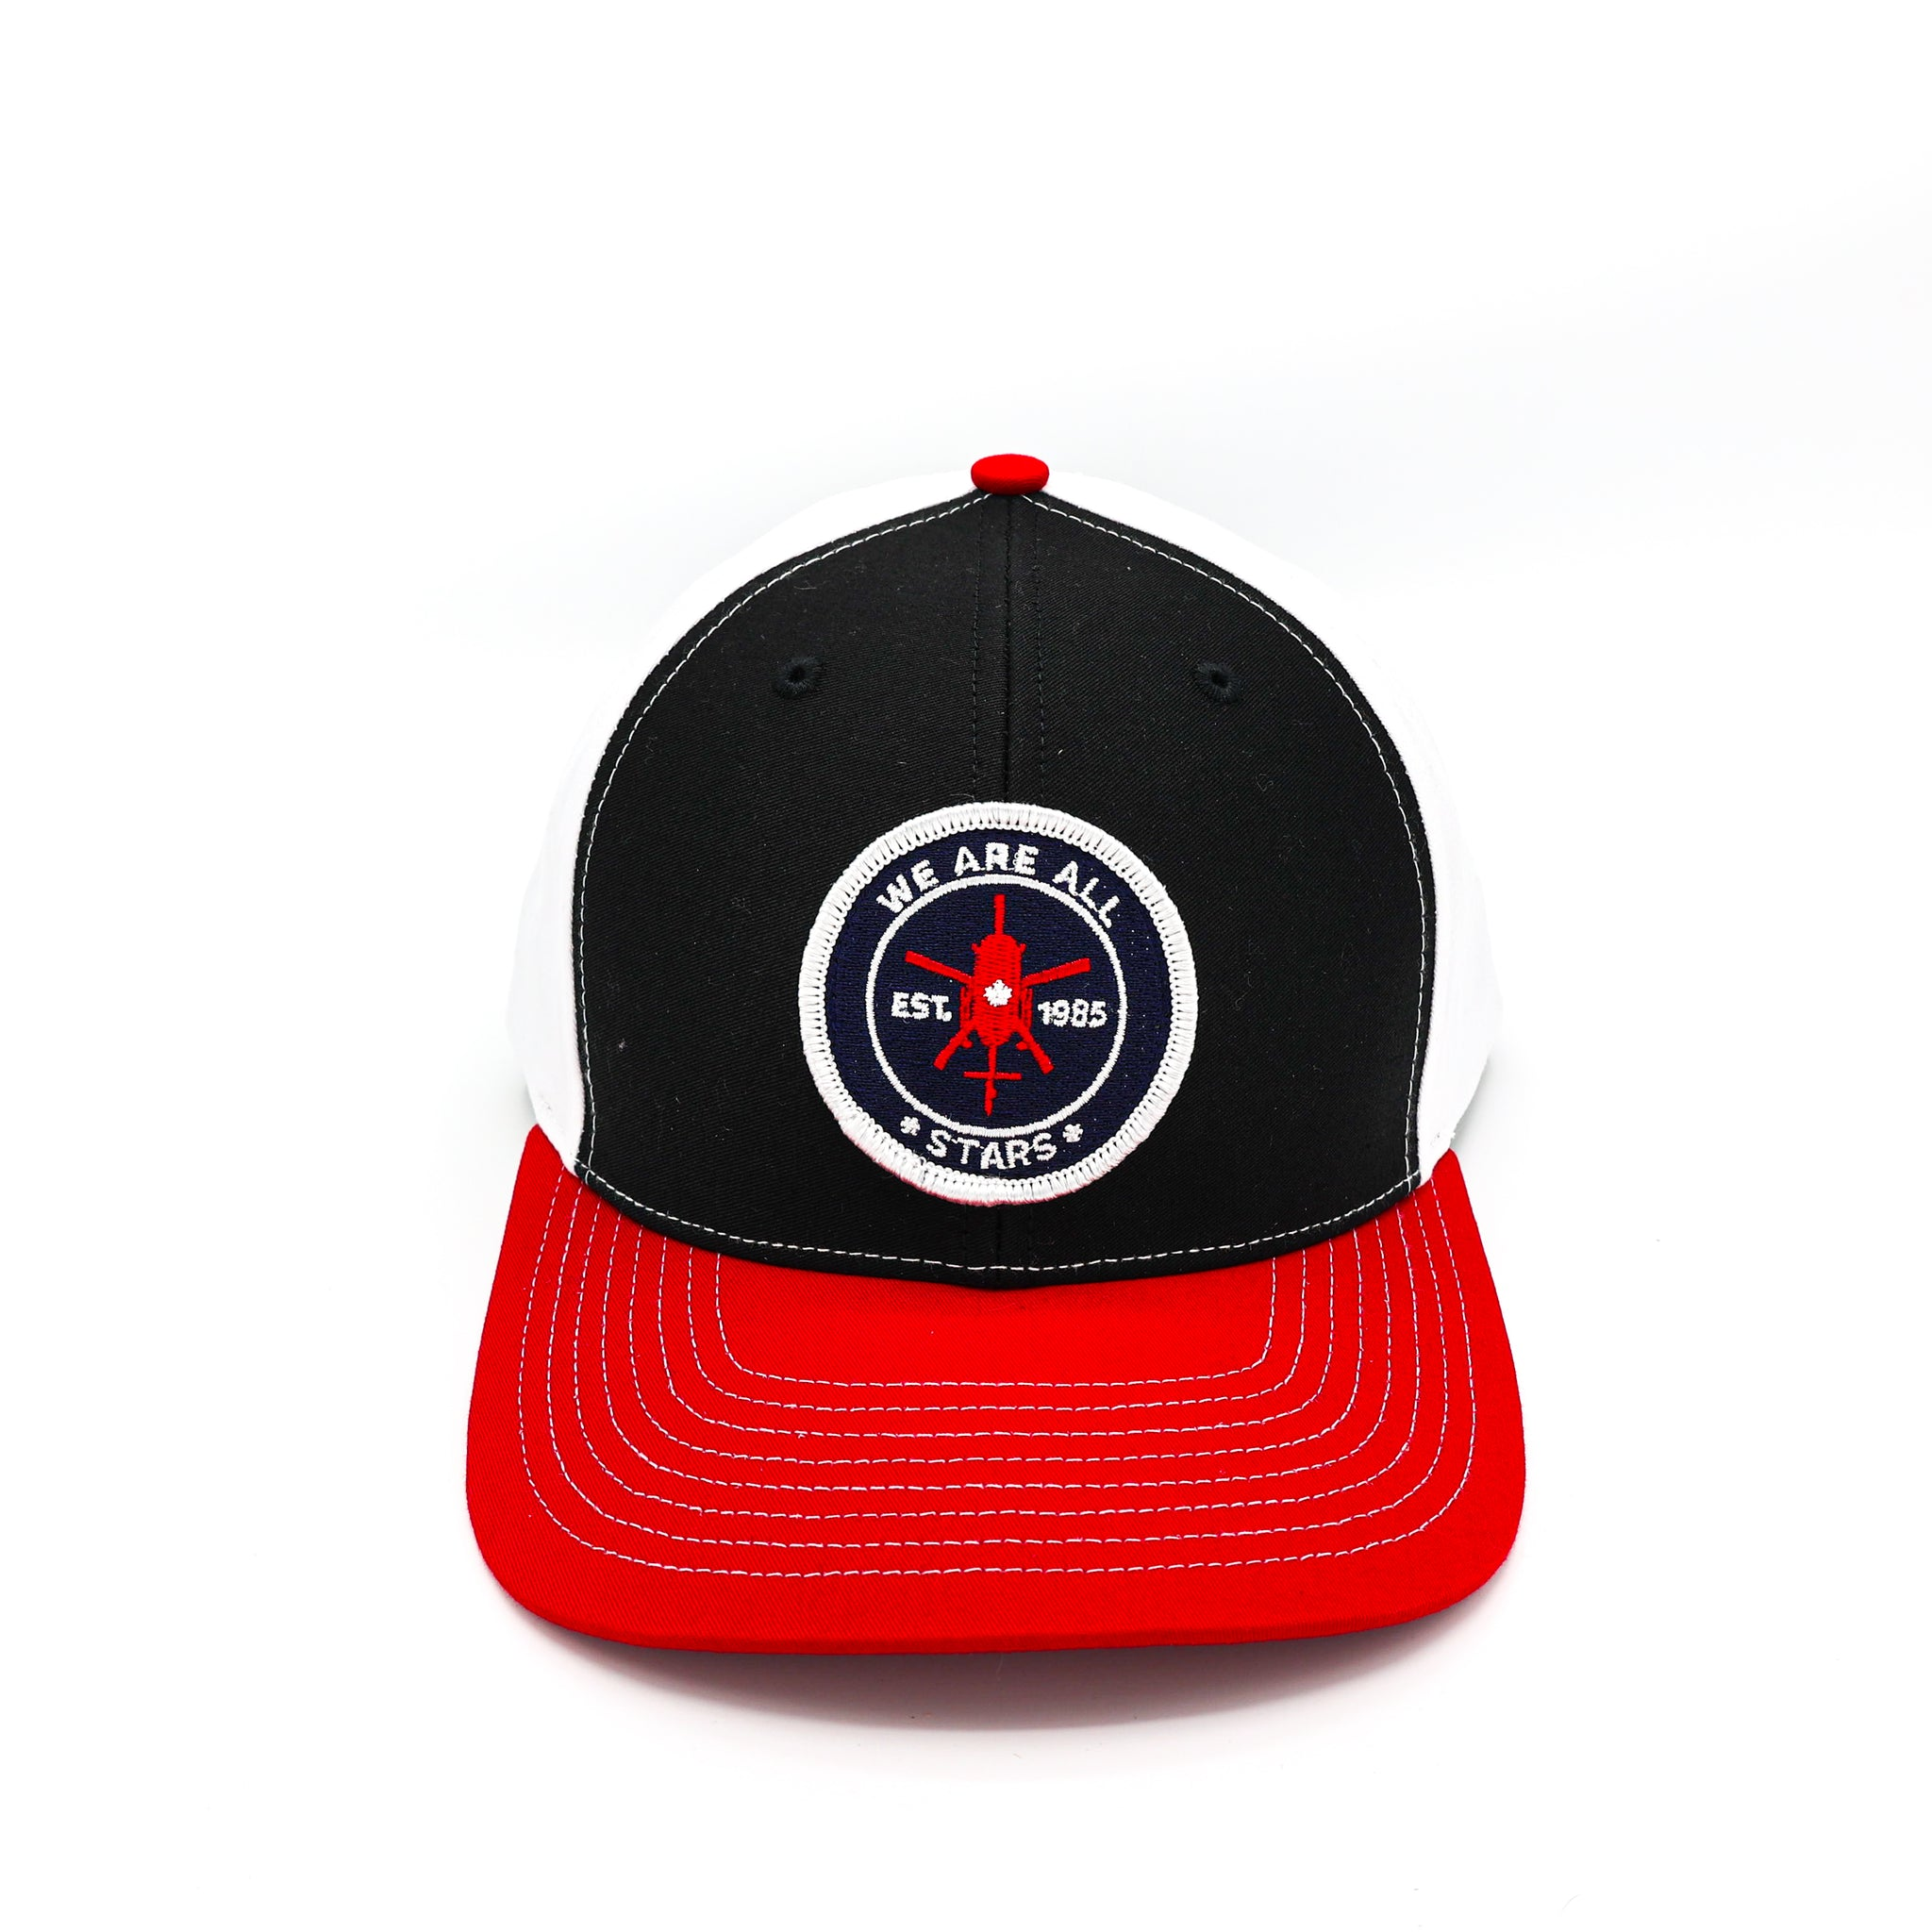 Heritage Snap Back Cap